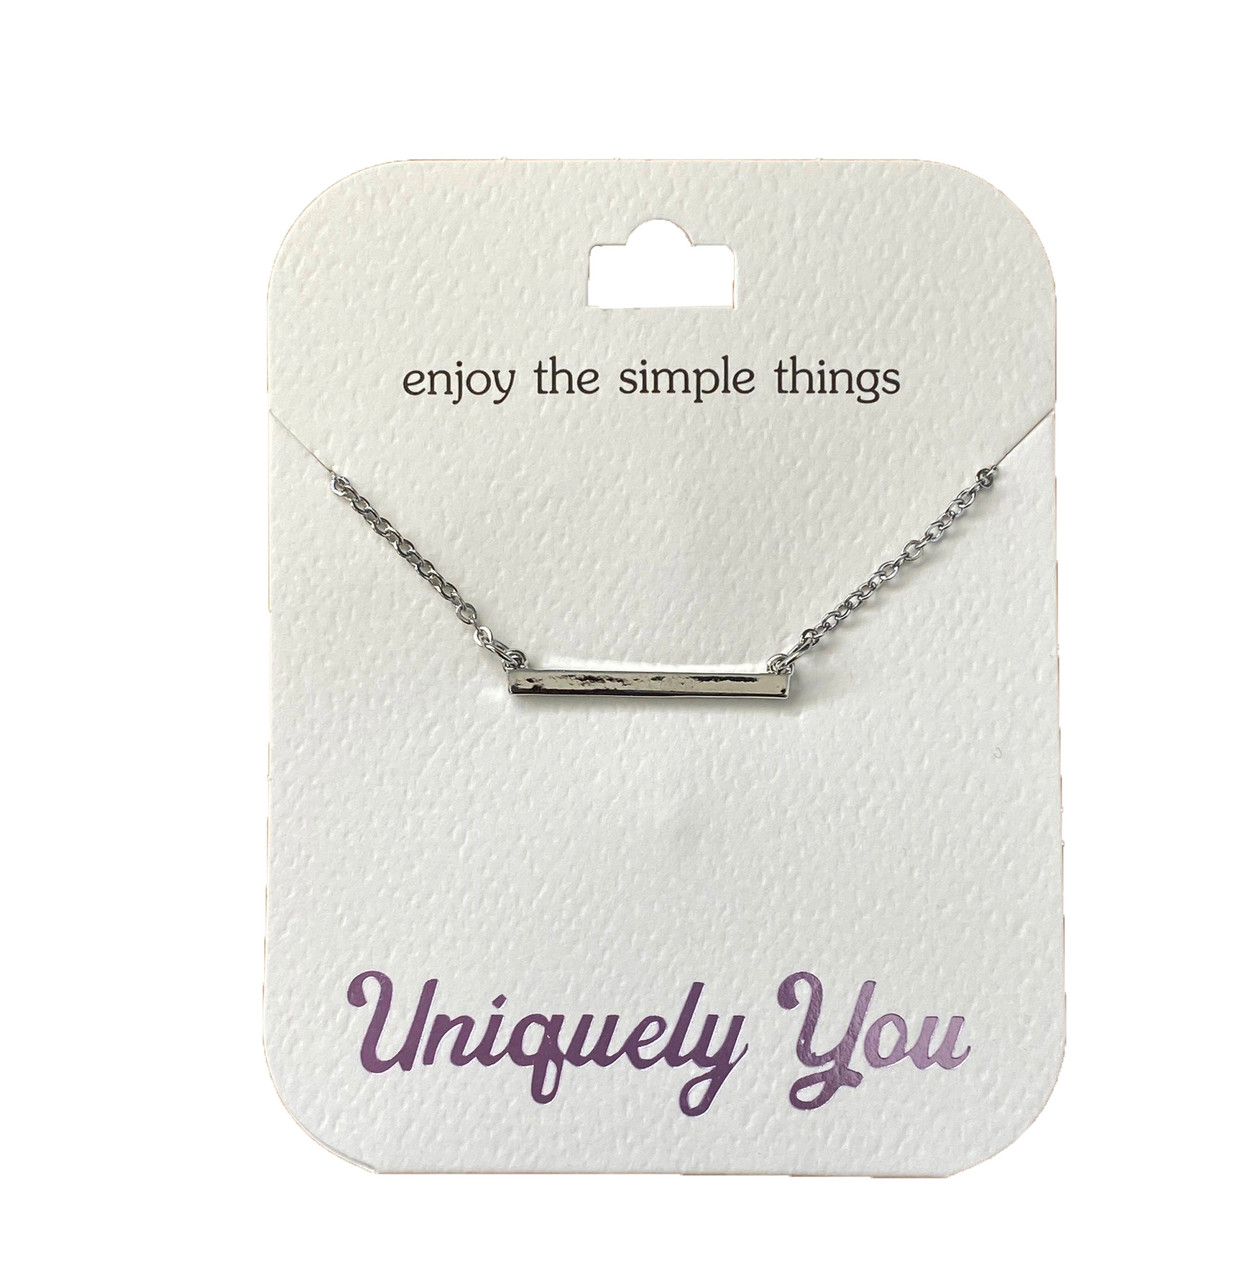 YOU4005 Uniquely You Pendant, Simple things